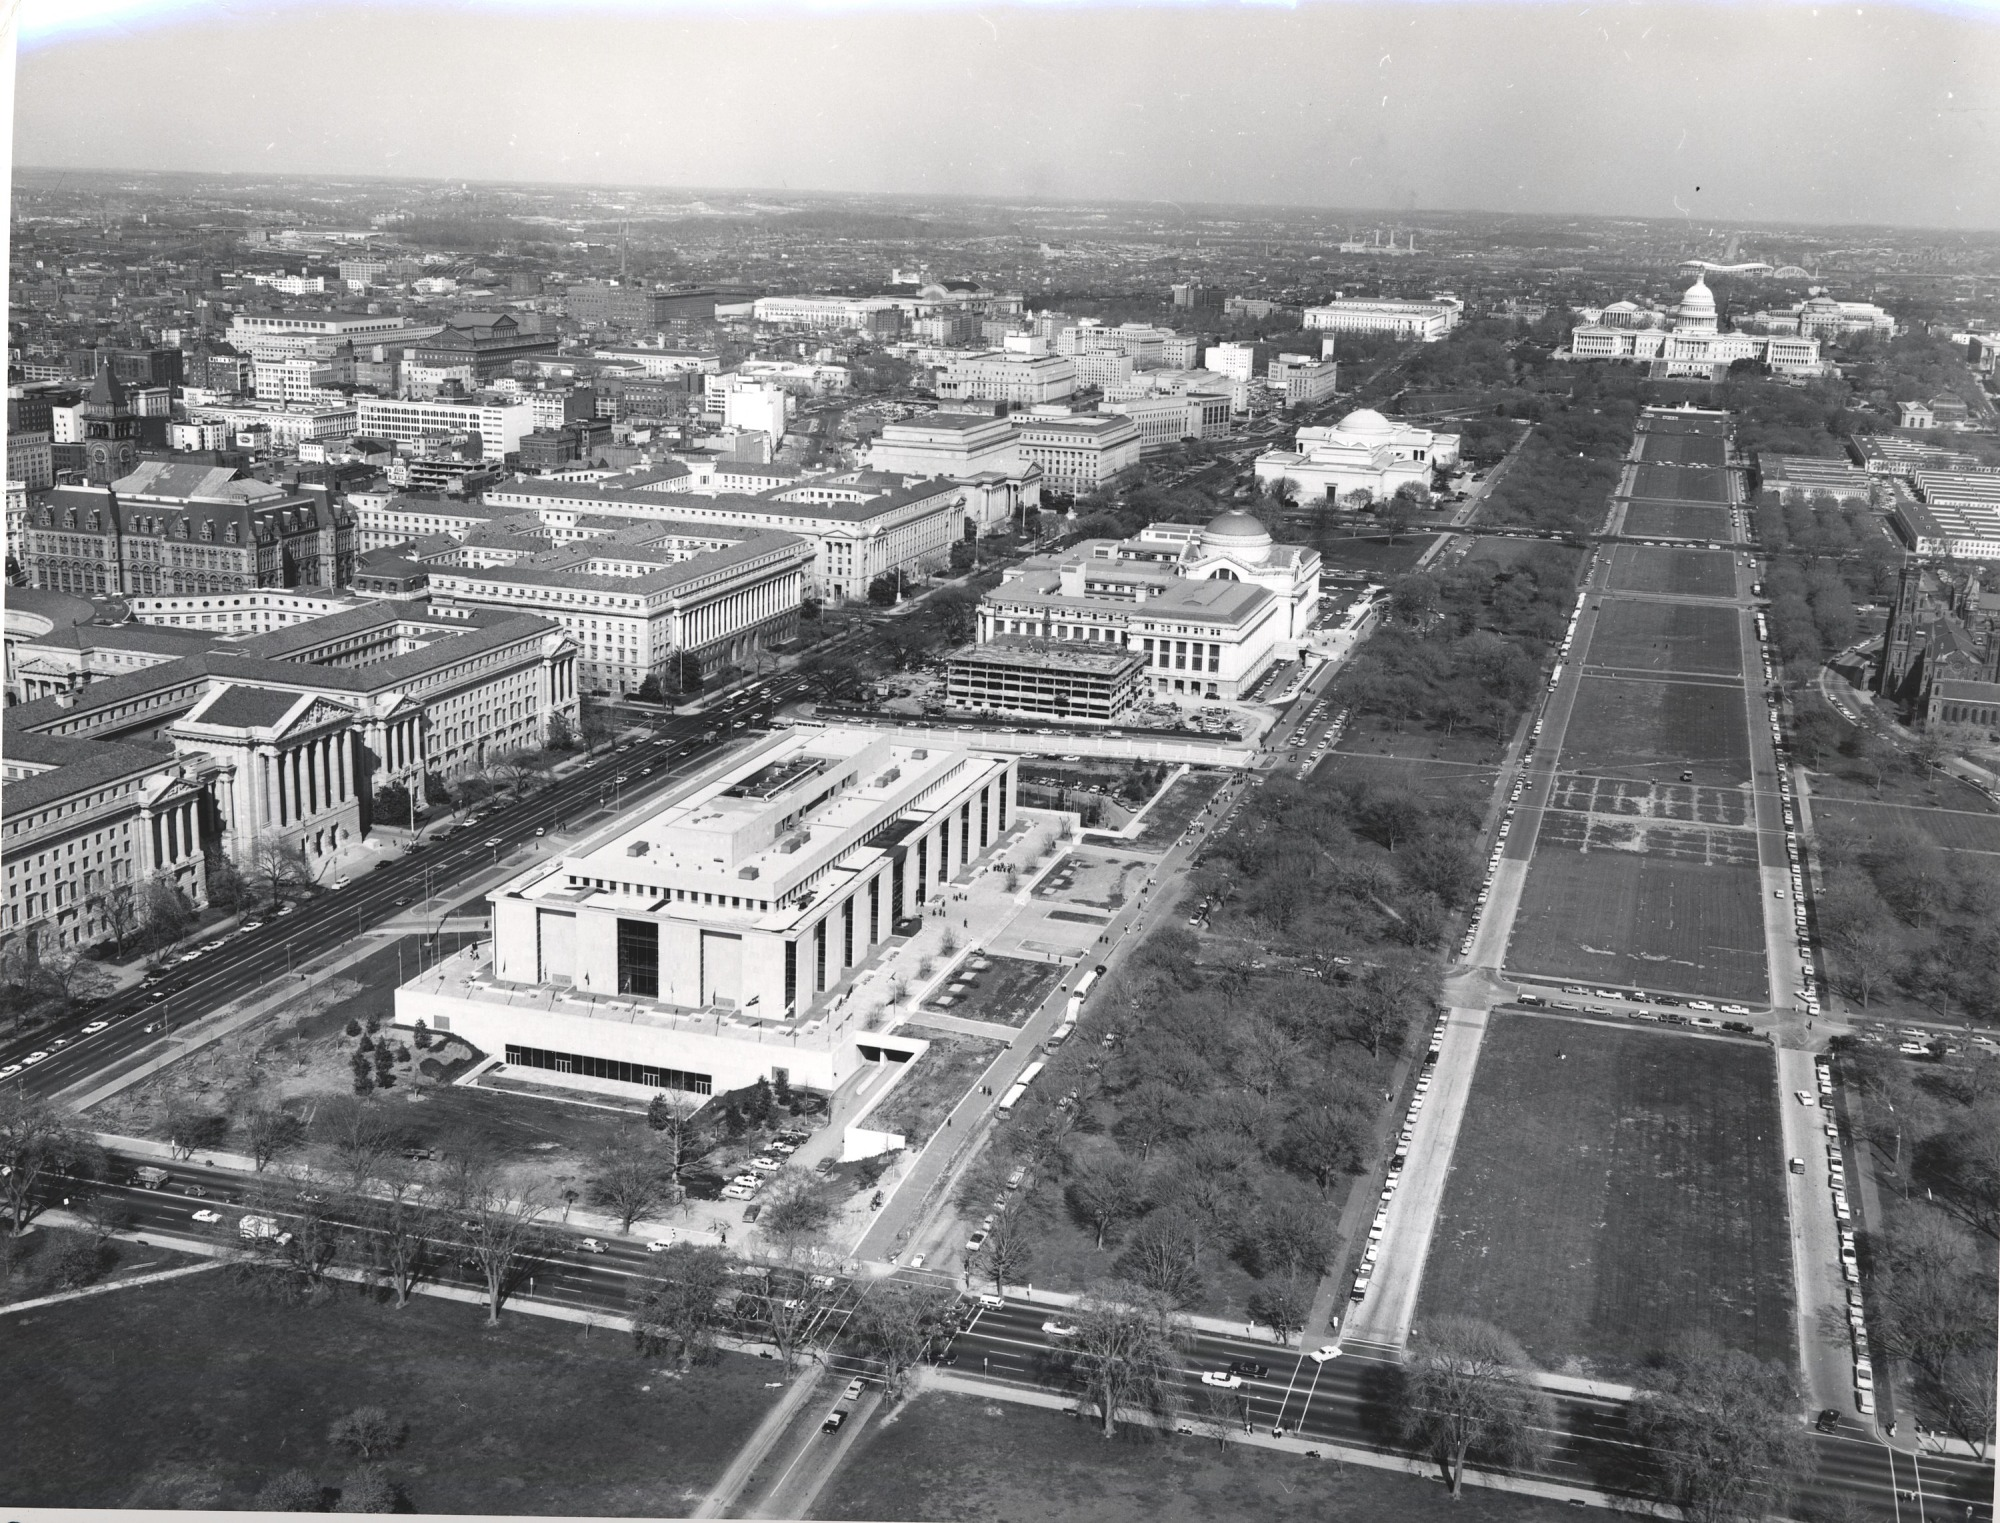 Newly Completed Museum of History and Technology, by Unknown, 1964, Smithsonian Archives - History Div, SIA2010-2181 or P6499-A or MAH-P6499A.